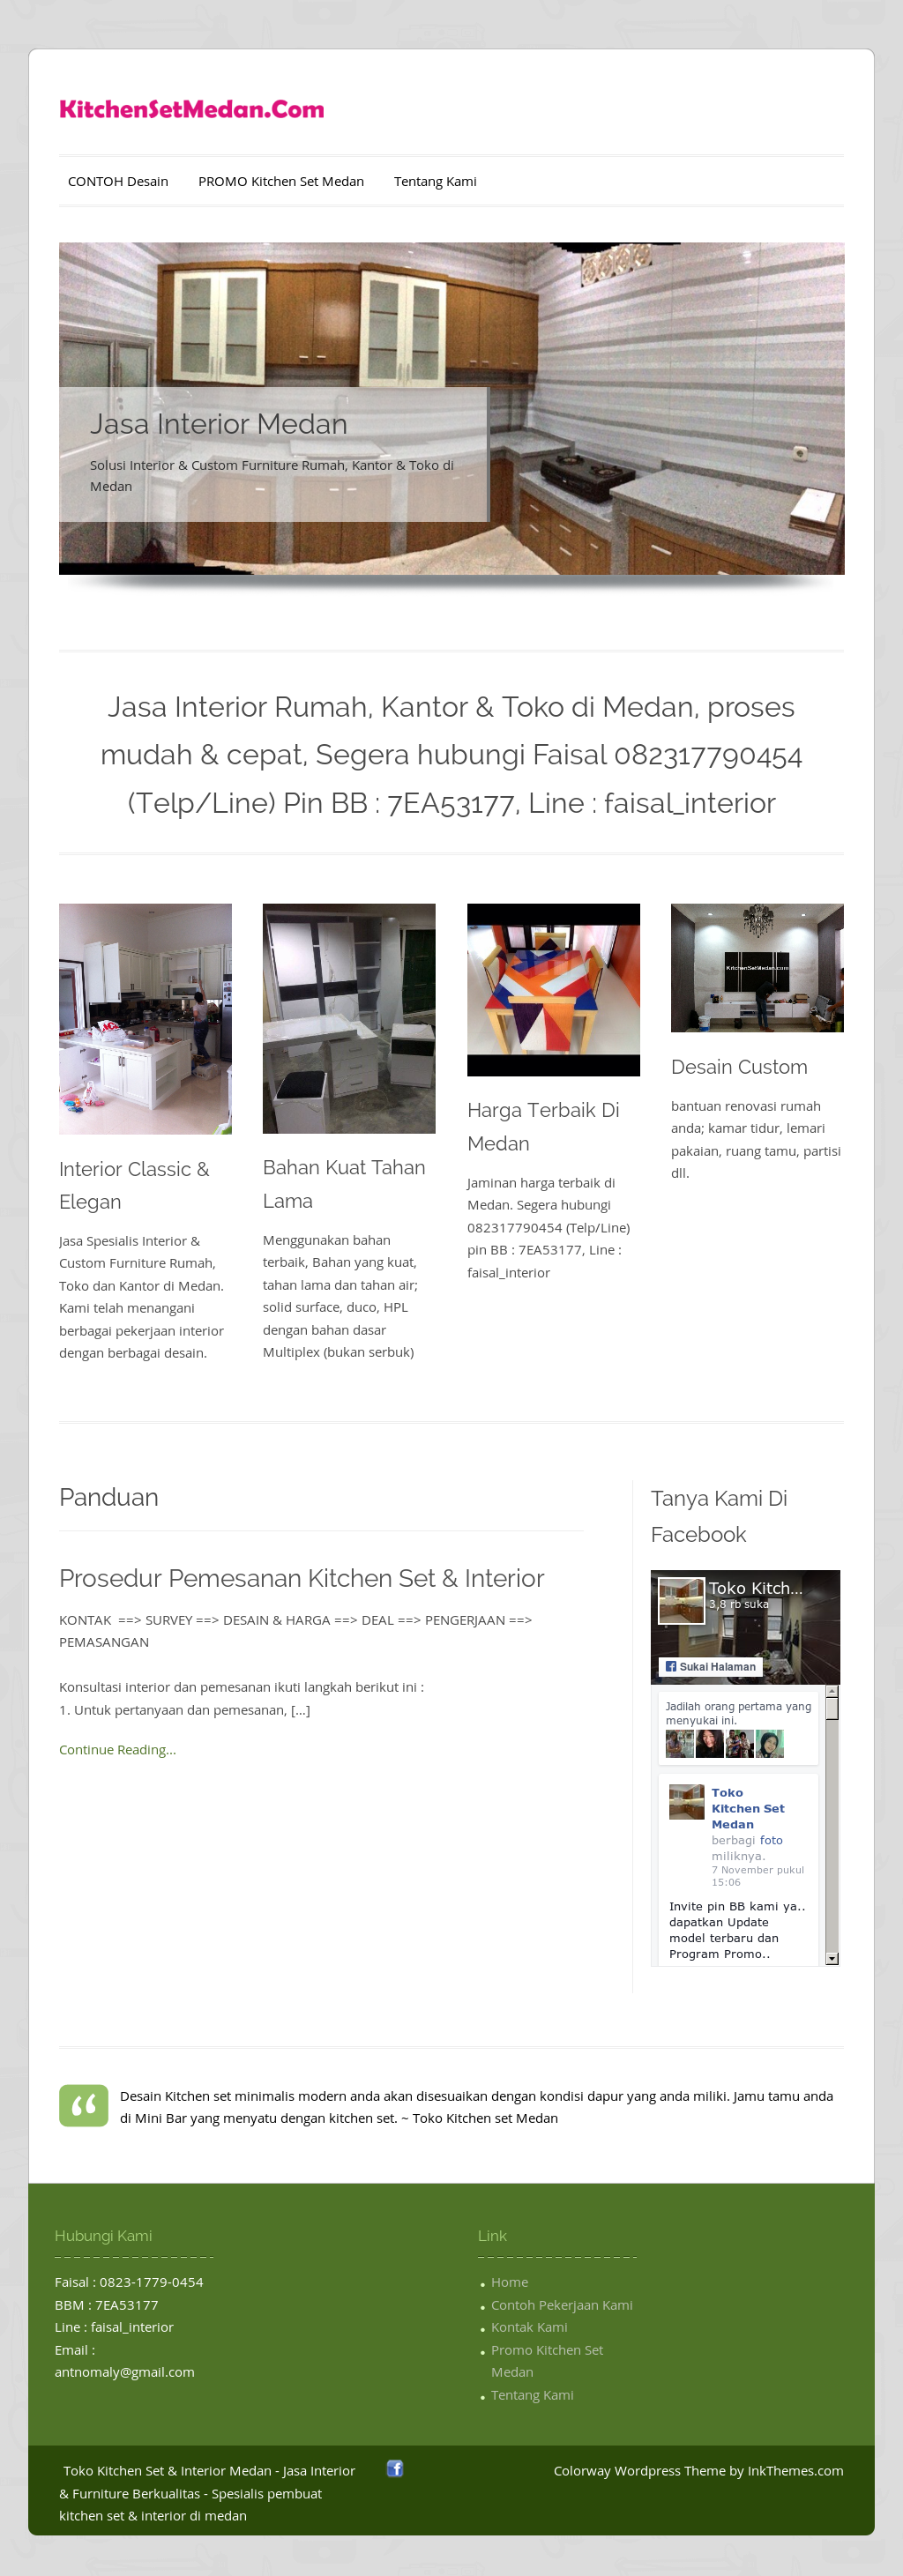 Toko Kitchen Set Medan Competitors, Revenue And Employees   Owler Company  Profile